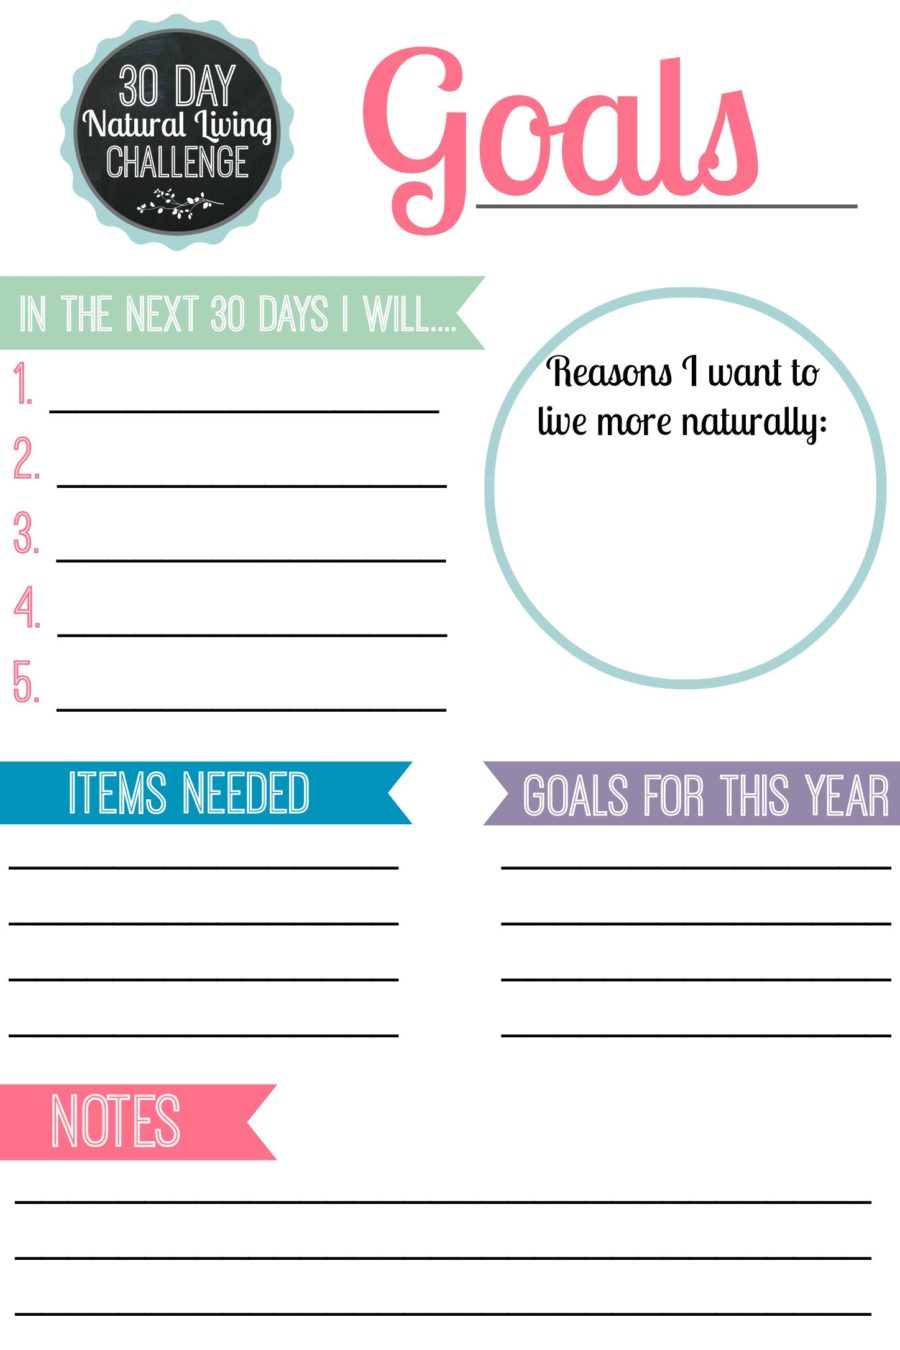 30 Day Natural Living Challenge: Setting Goals